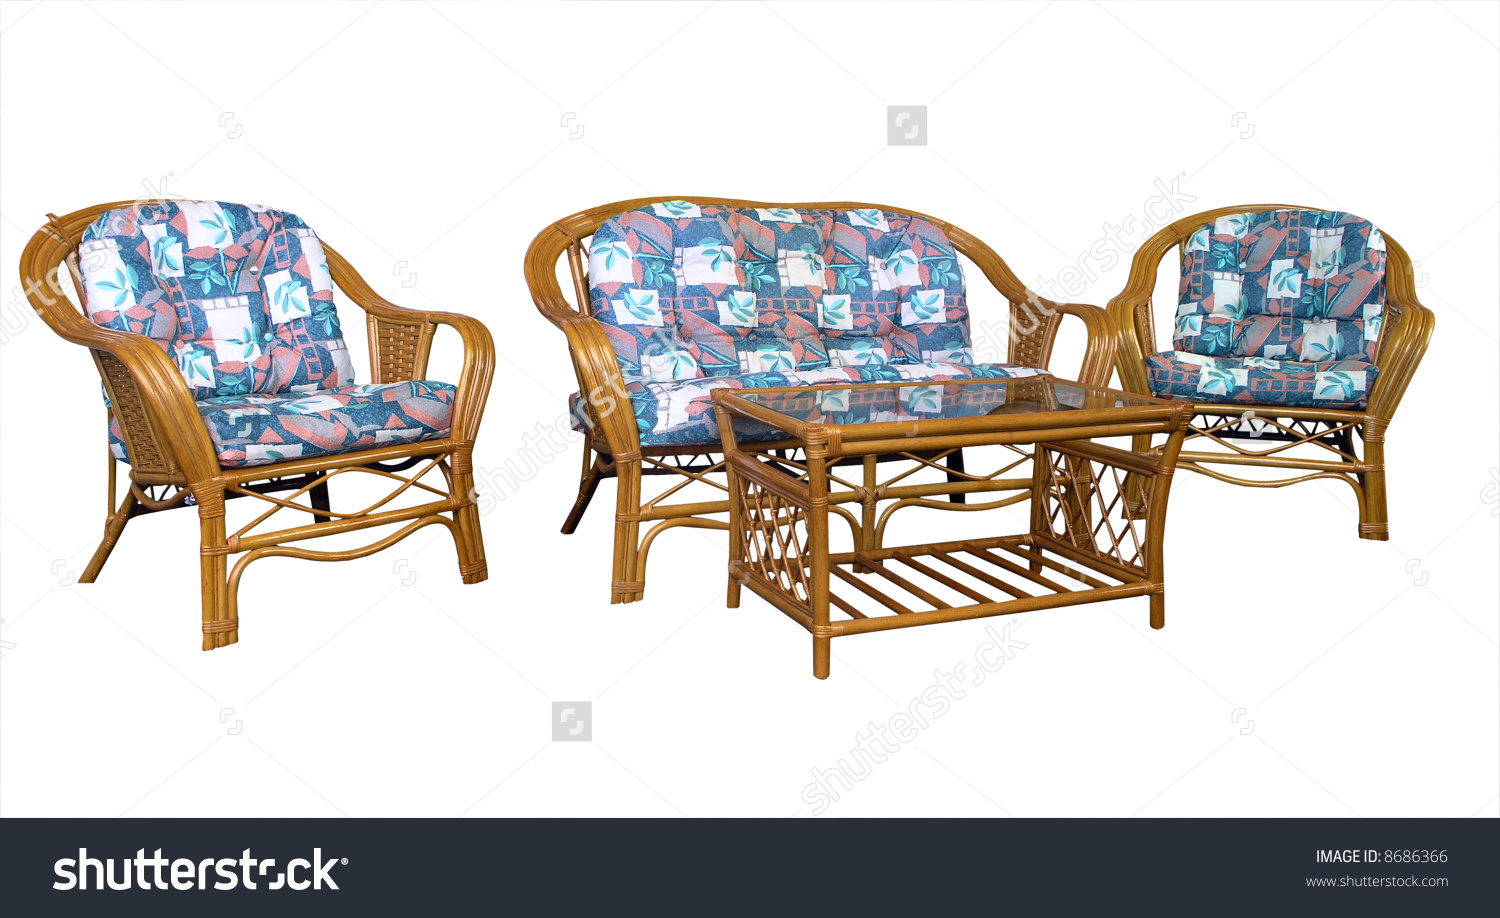 Cane Lounge Suite Stock Photo 8686366.